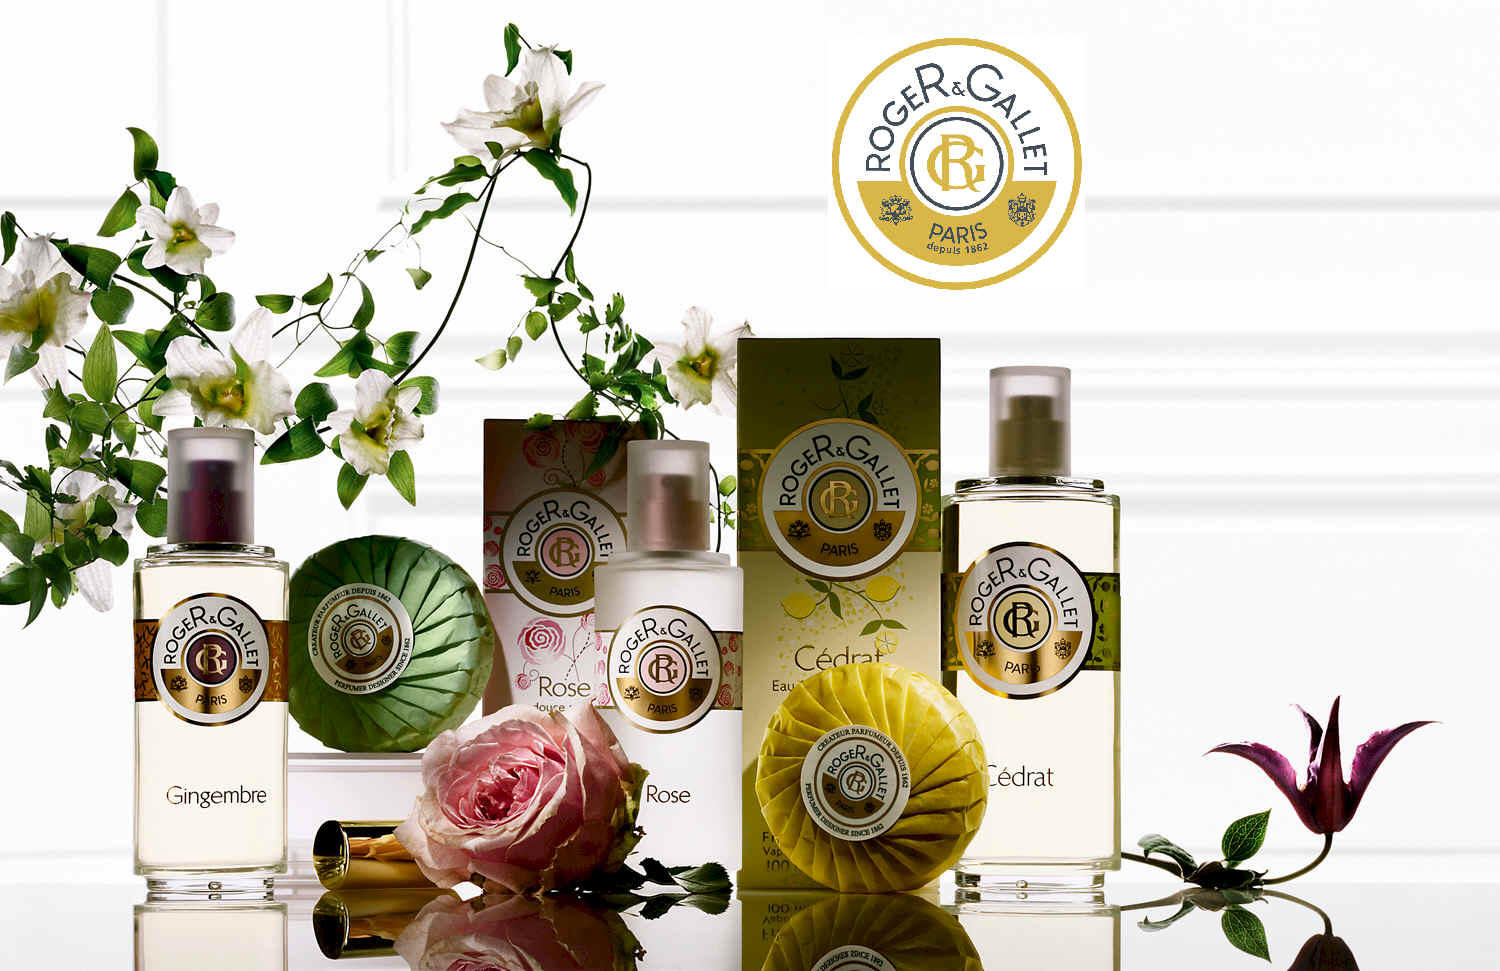 3 For 2 Roger & Gallet Body Care Product @ lookfantastic.com (US & CA)